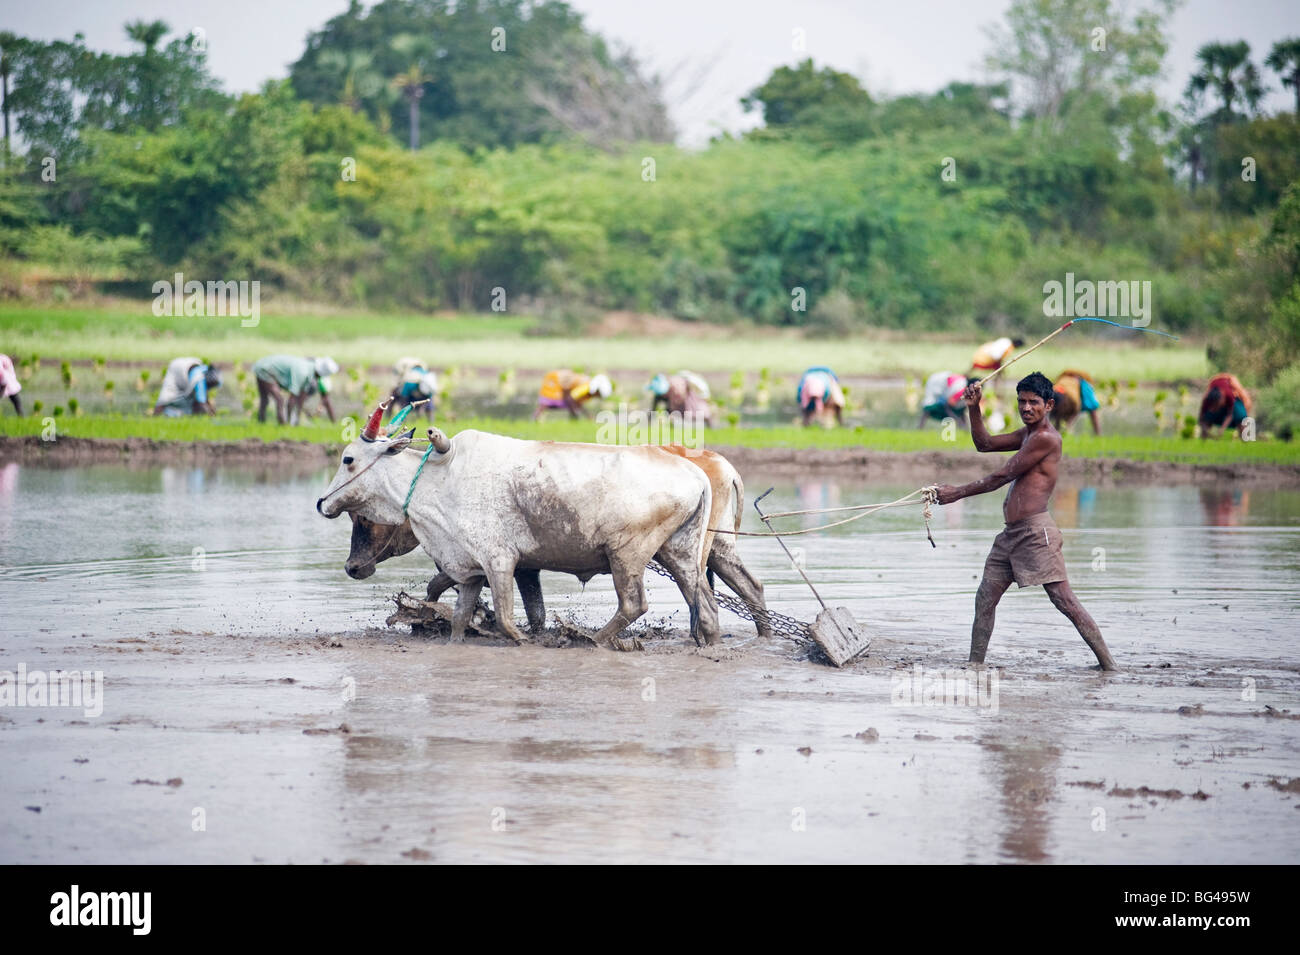 Farmer using cattle to plough rice paddy, rice planters in background, Tiruvannamalai district, Tamil Nadu, India, - Stock Image